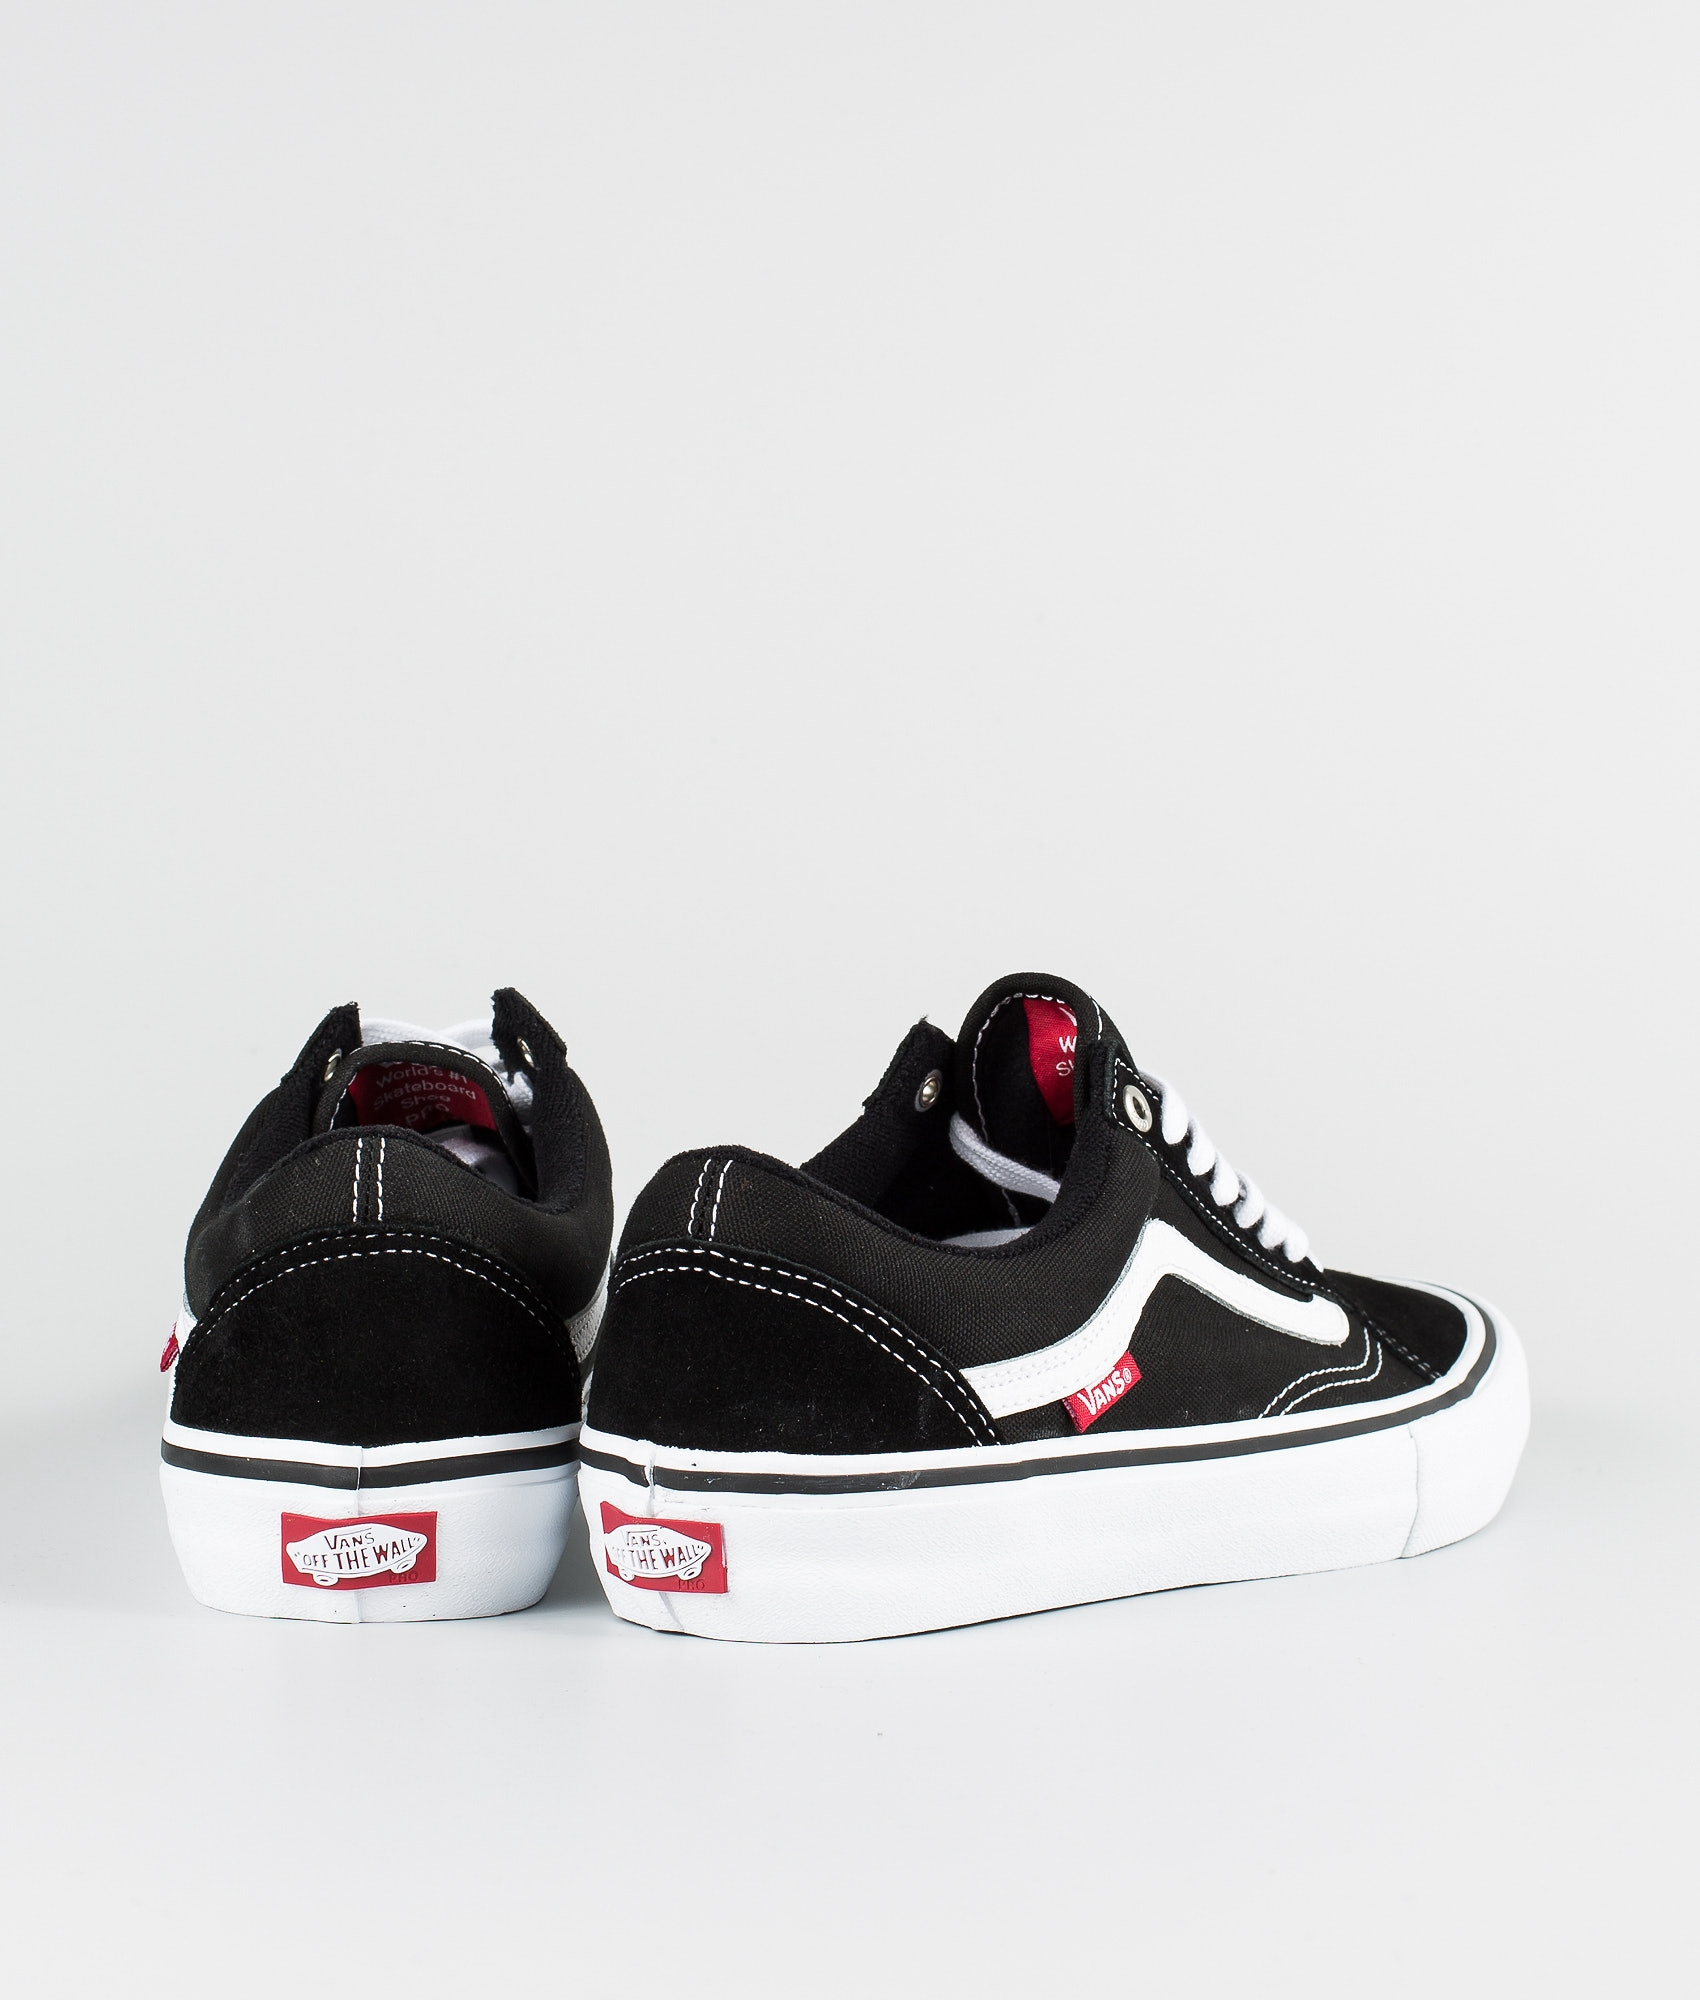 a656b81110 Vans Old Skool Pro Shoes Black White - Ridestore.com